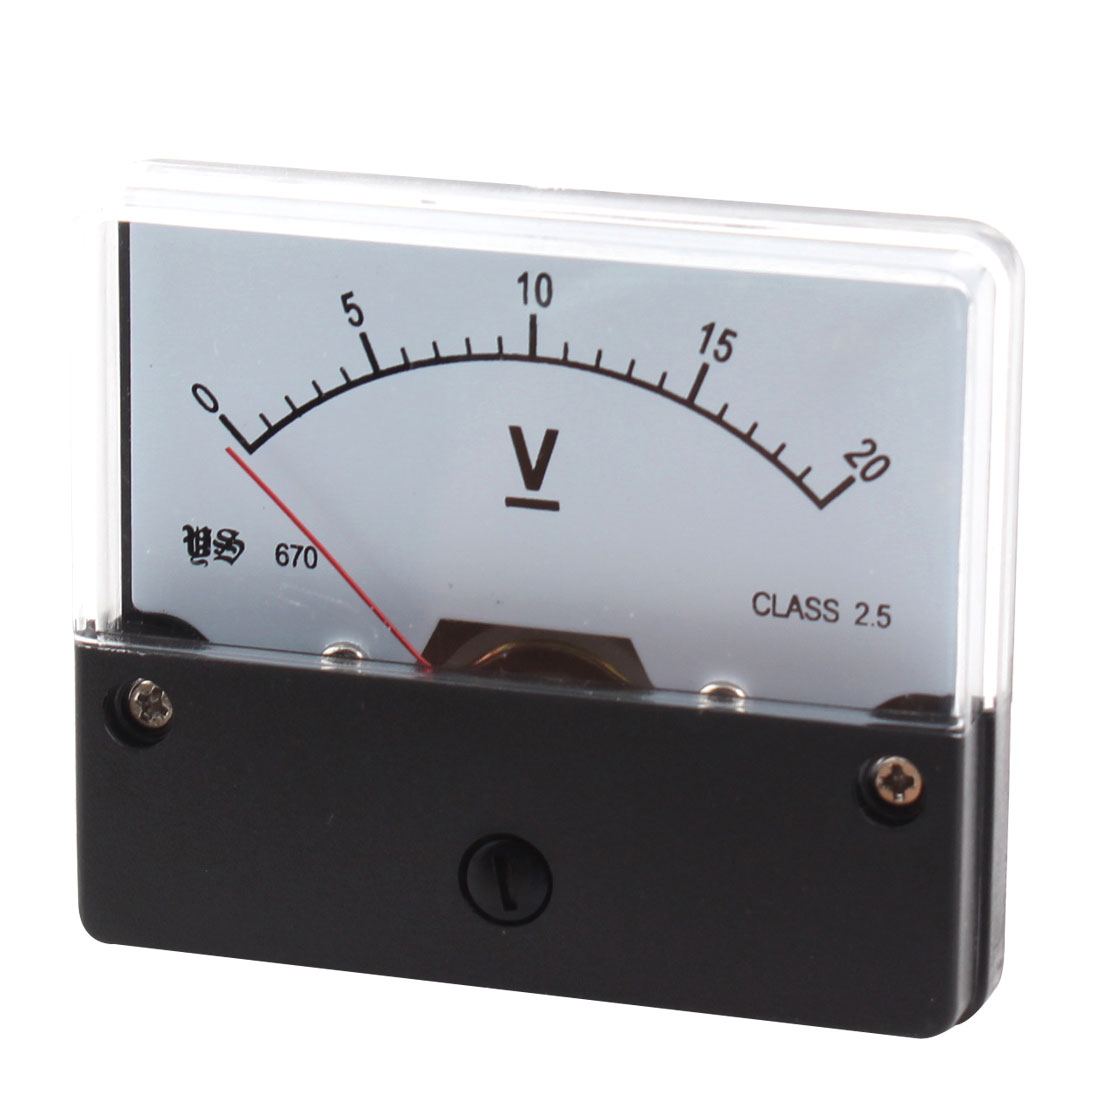 DC 0-20V Rectangle Analog Panel Volt Meter Voltmeter Gauge